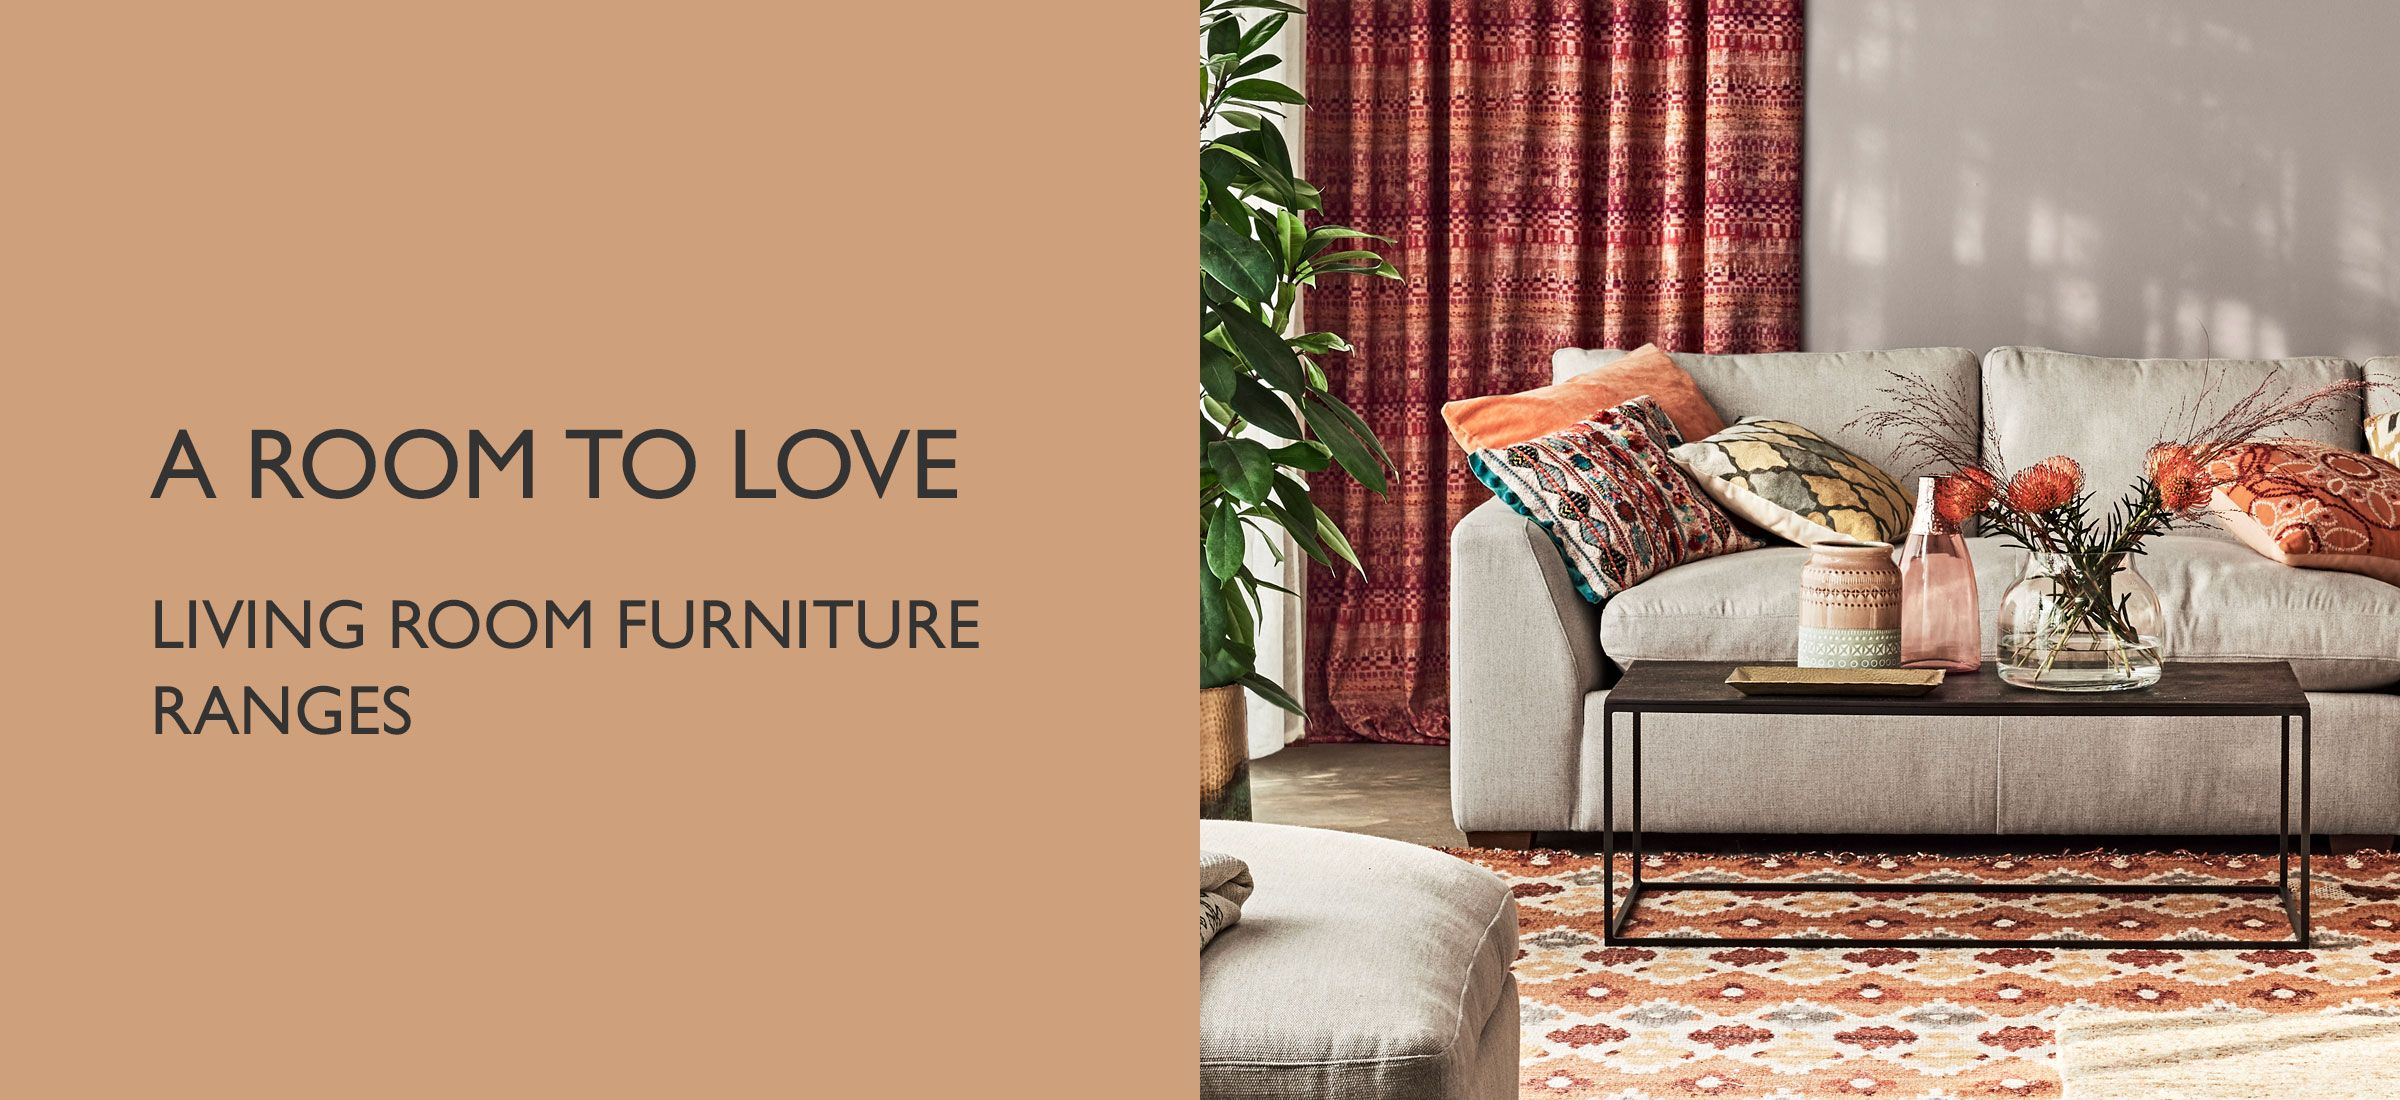 Living Room Furniture ranges